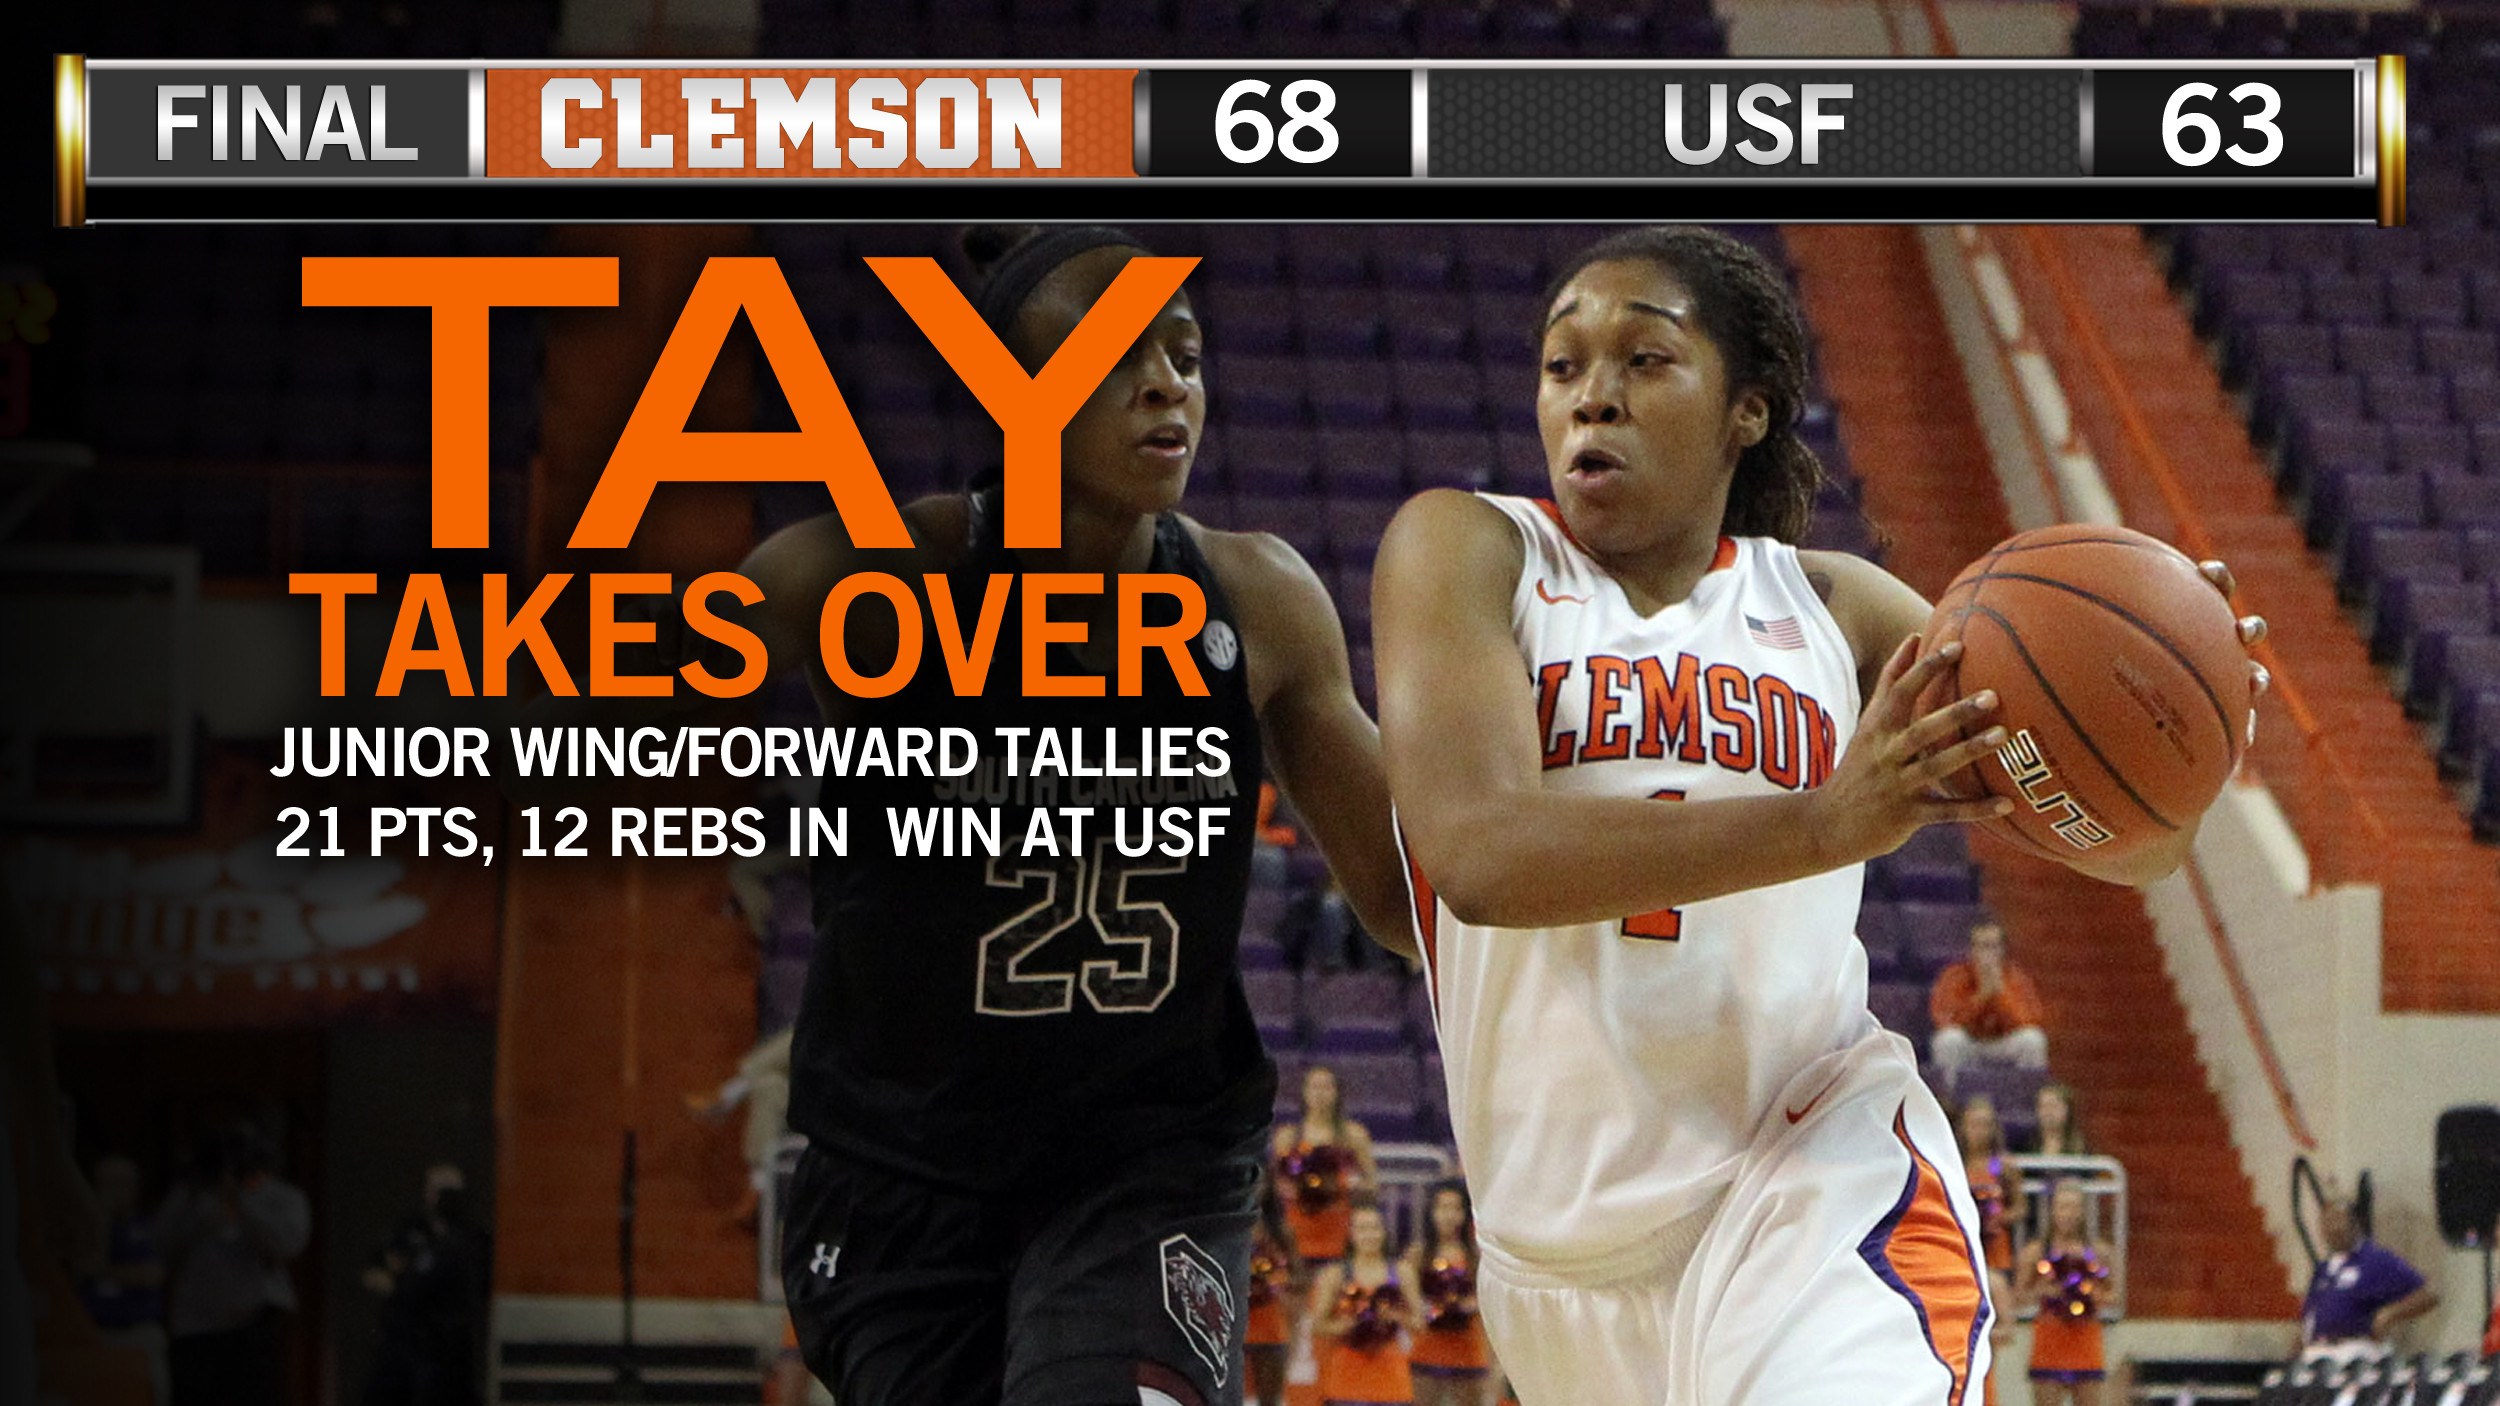 @ClemsonWBB Holds On For 68-63 Win at USF